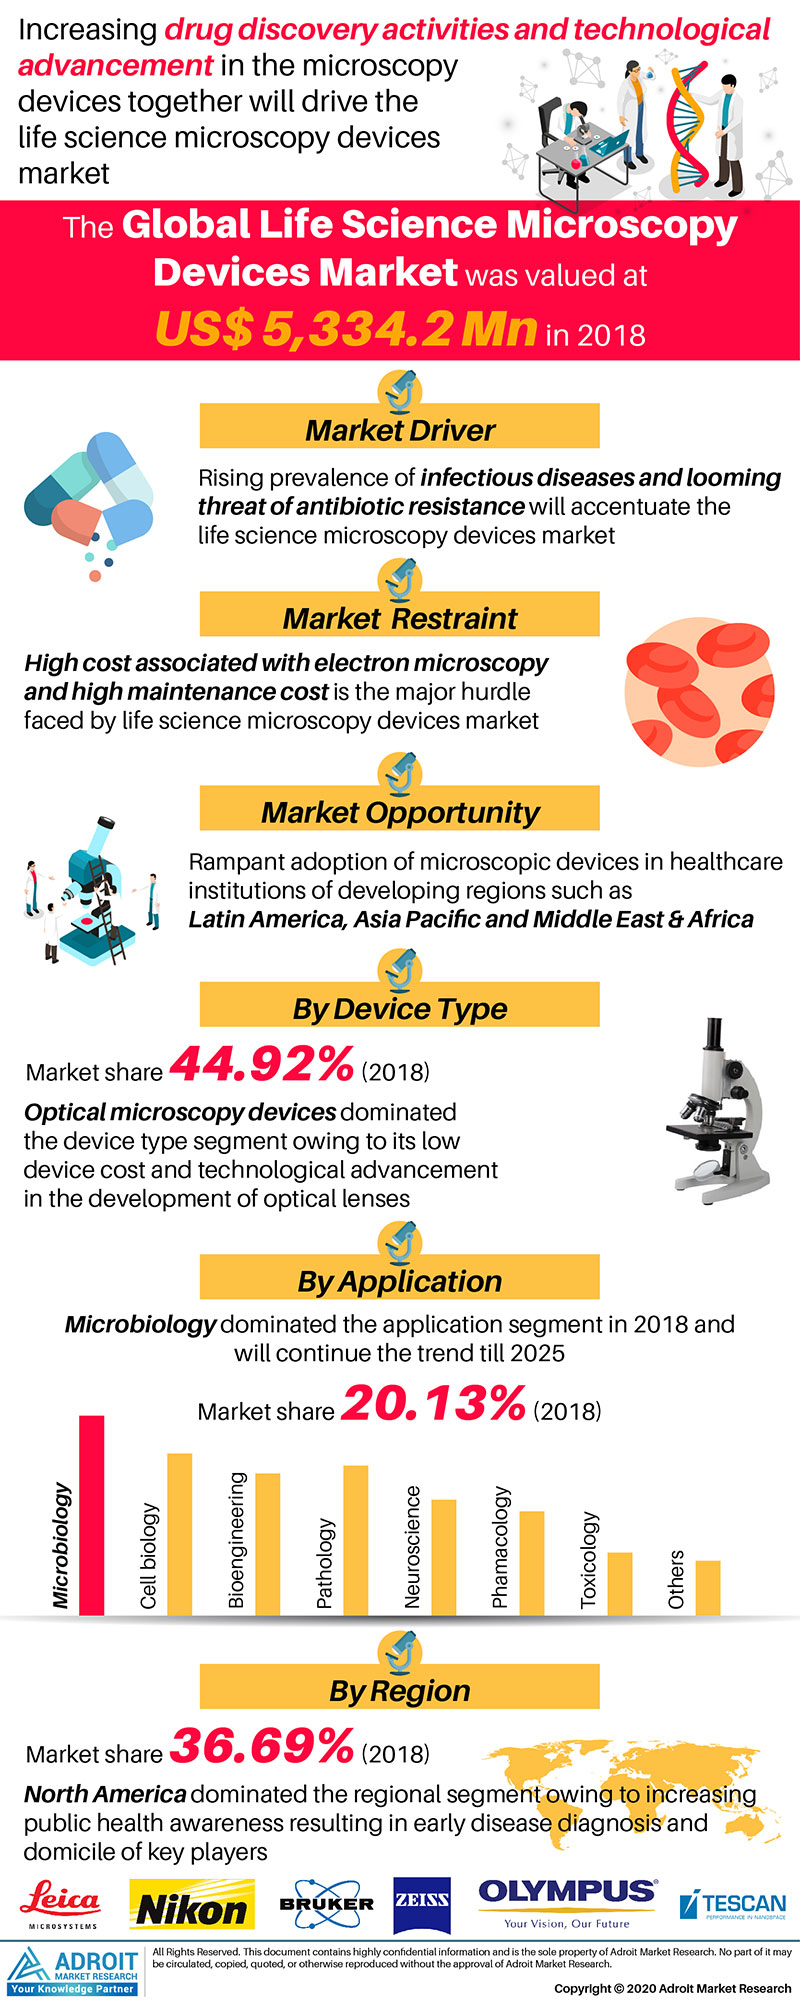 Life Sciences Microscopy Devices Market by Application and Region Global Forecasts 2018 to 2025